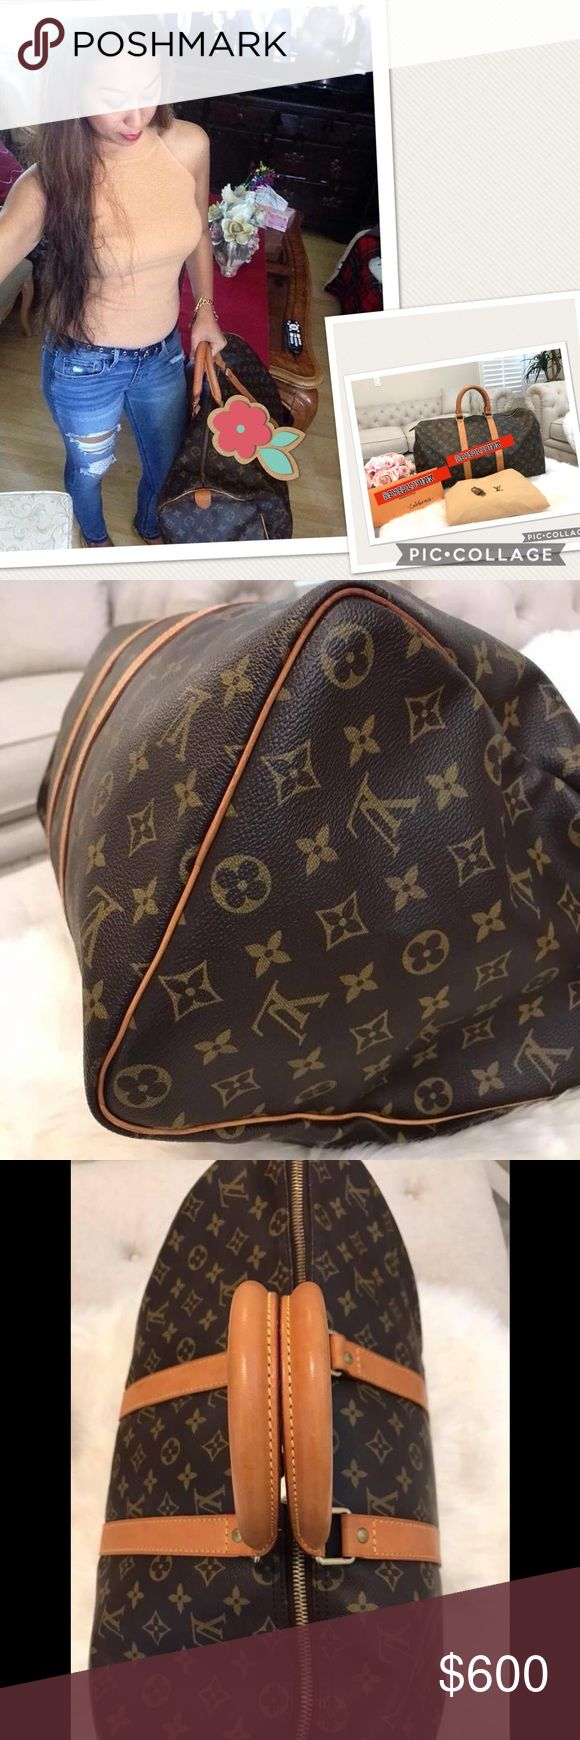 Preloved authentic Louis Vuitton keepall 45 Preloved authentic Louis Vuitton Keepall Monogram 45 it comes with lv dust bag and lv padlock 🔐. Excellent condition with a normal sign of used. MADE in 🇫🇷 France Louis Vuitton Bags Travel Bags